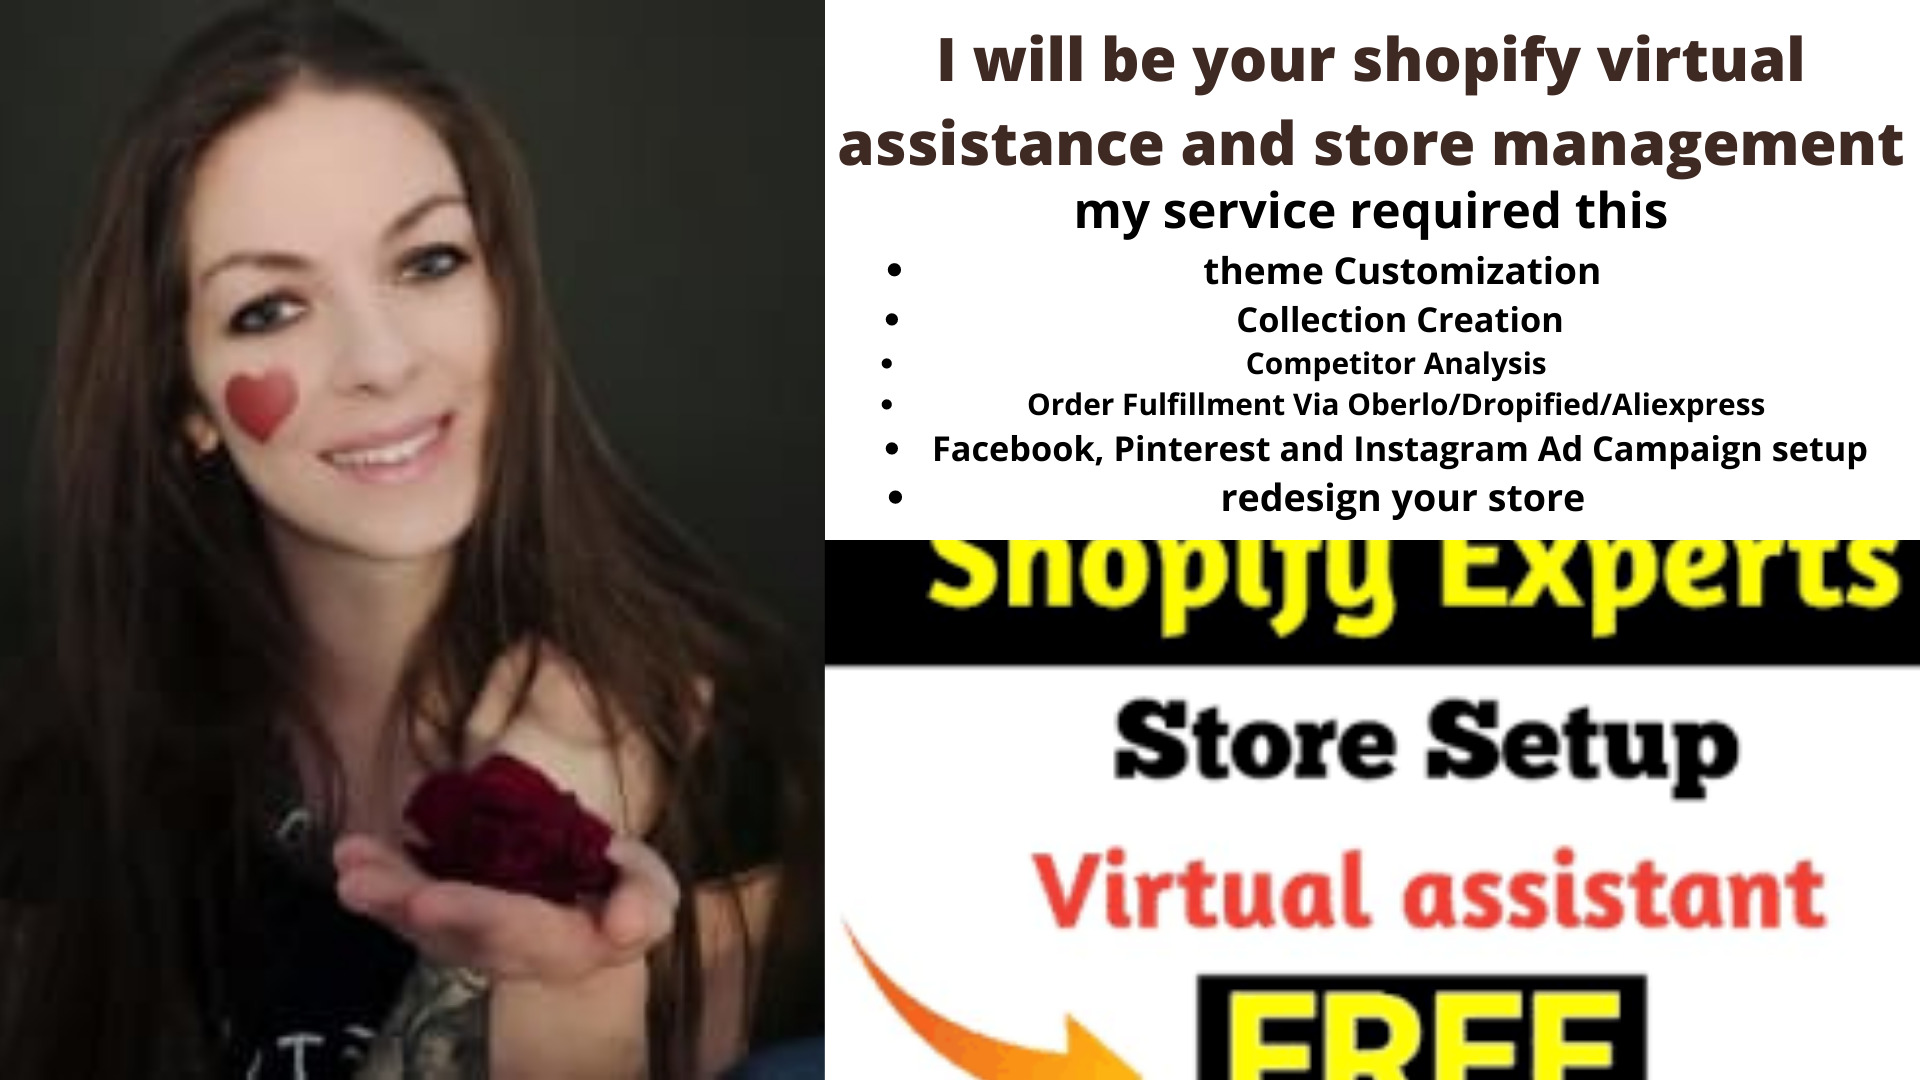 I will be your shopify virtual assistance and store management, FiverrBox